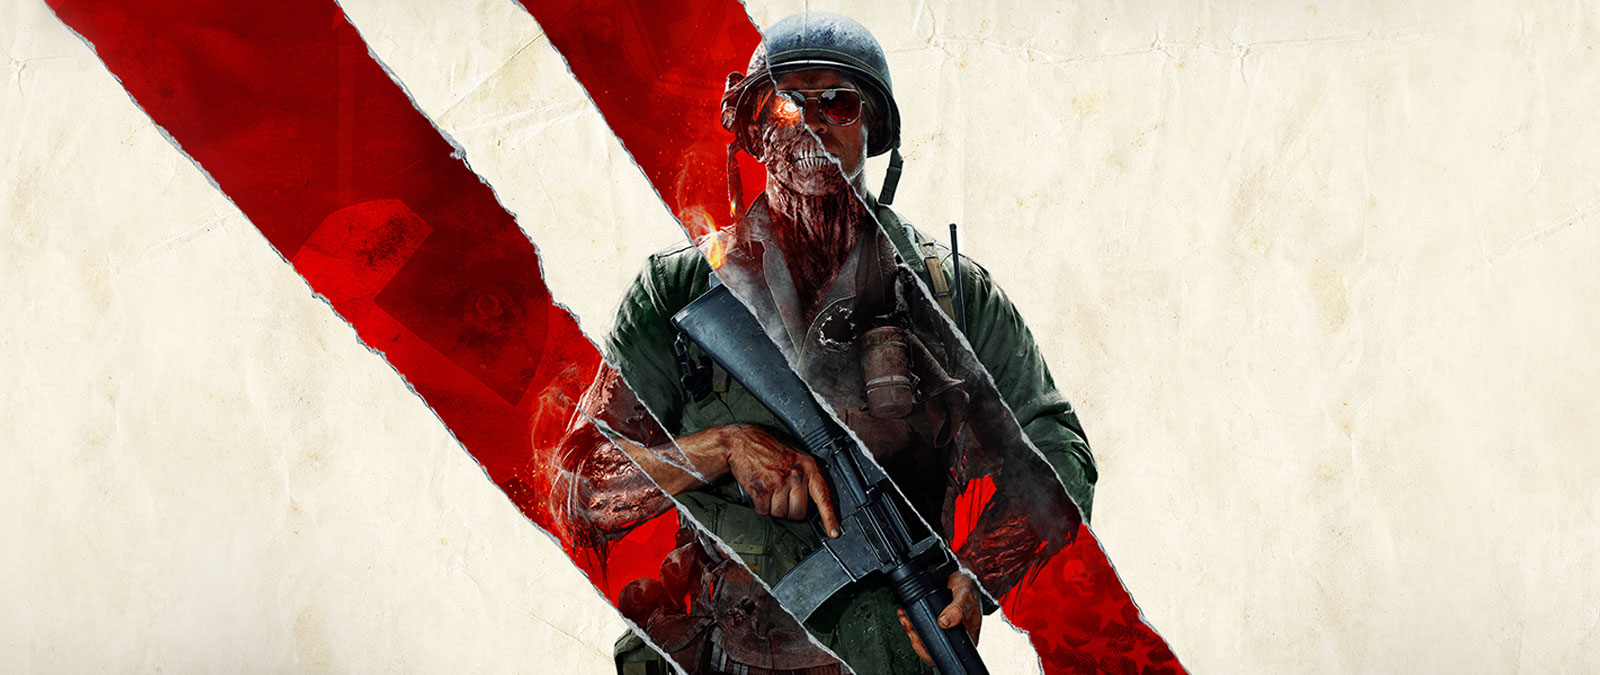 Personnage de Call of Duty: Black Ops Cold War qui est partiellement un zombie